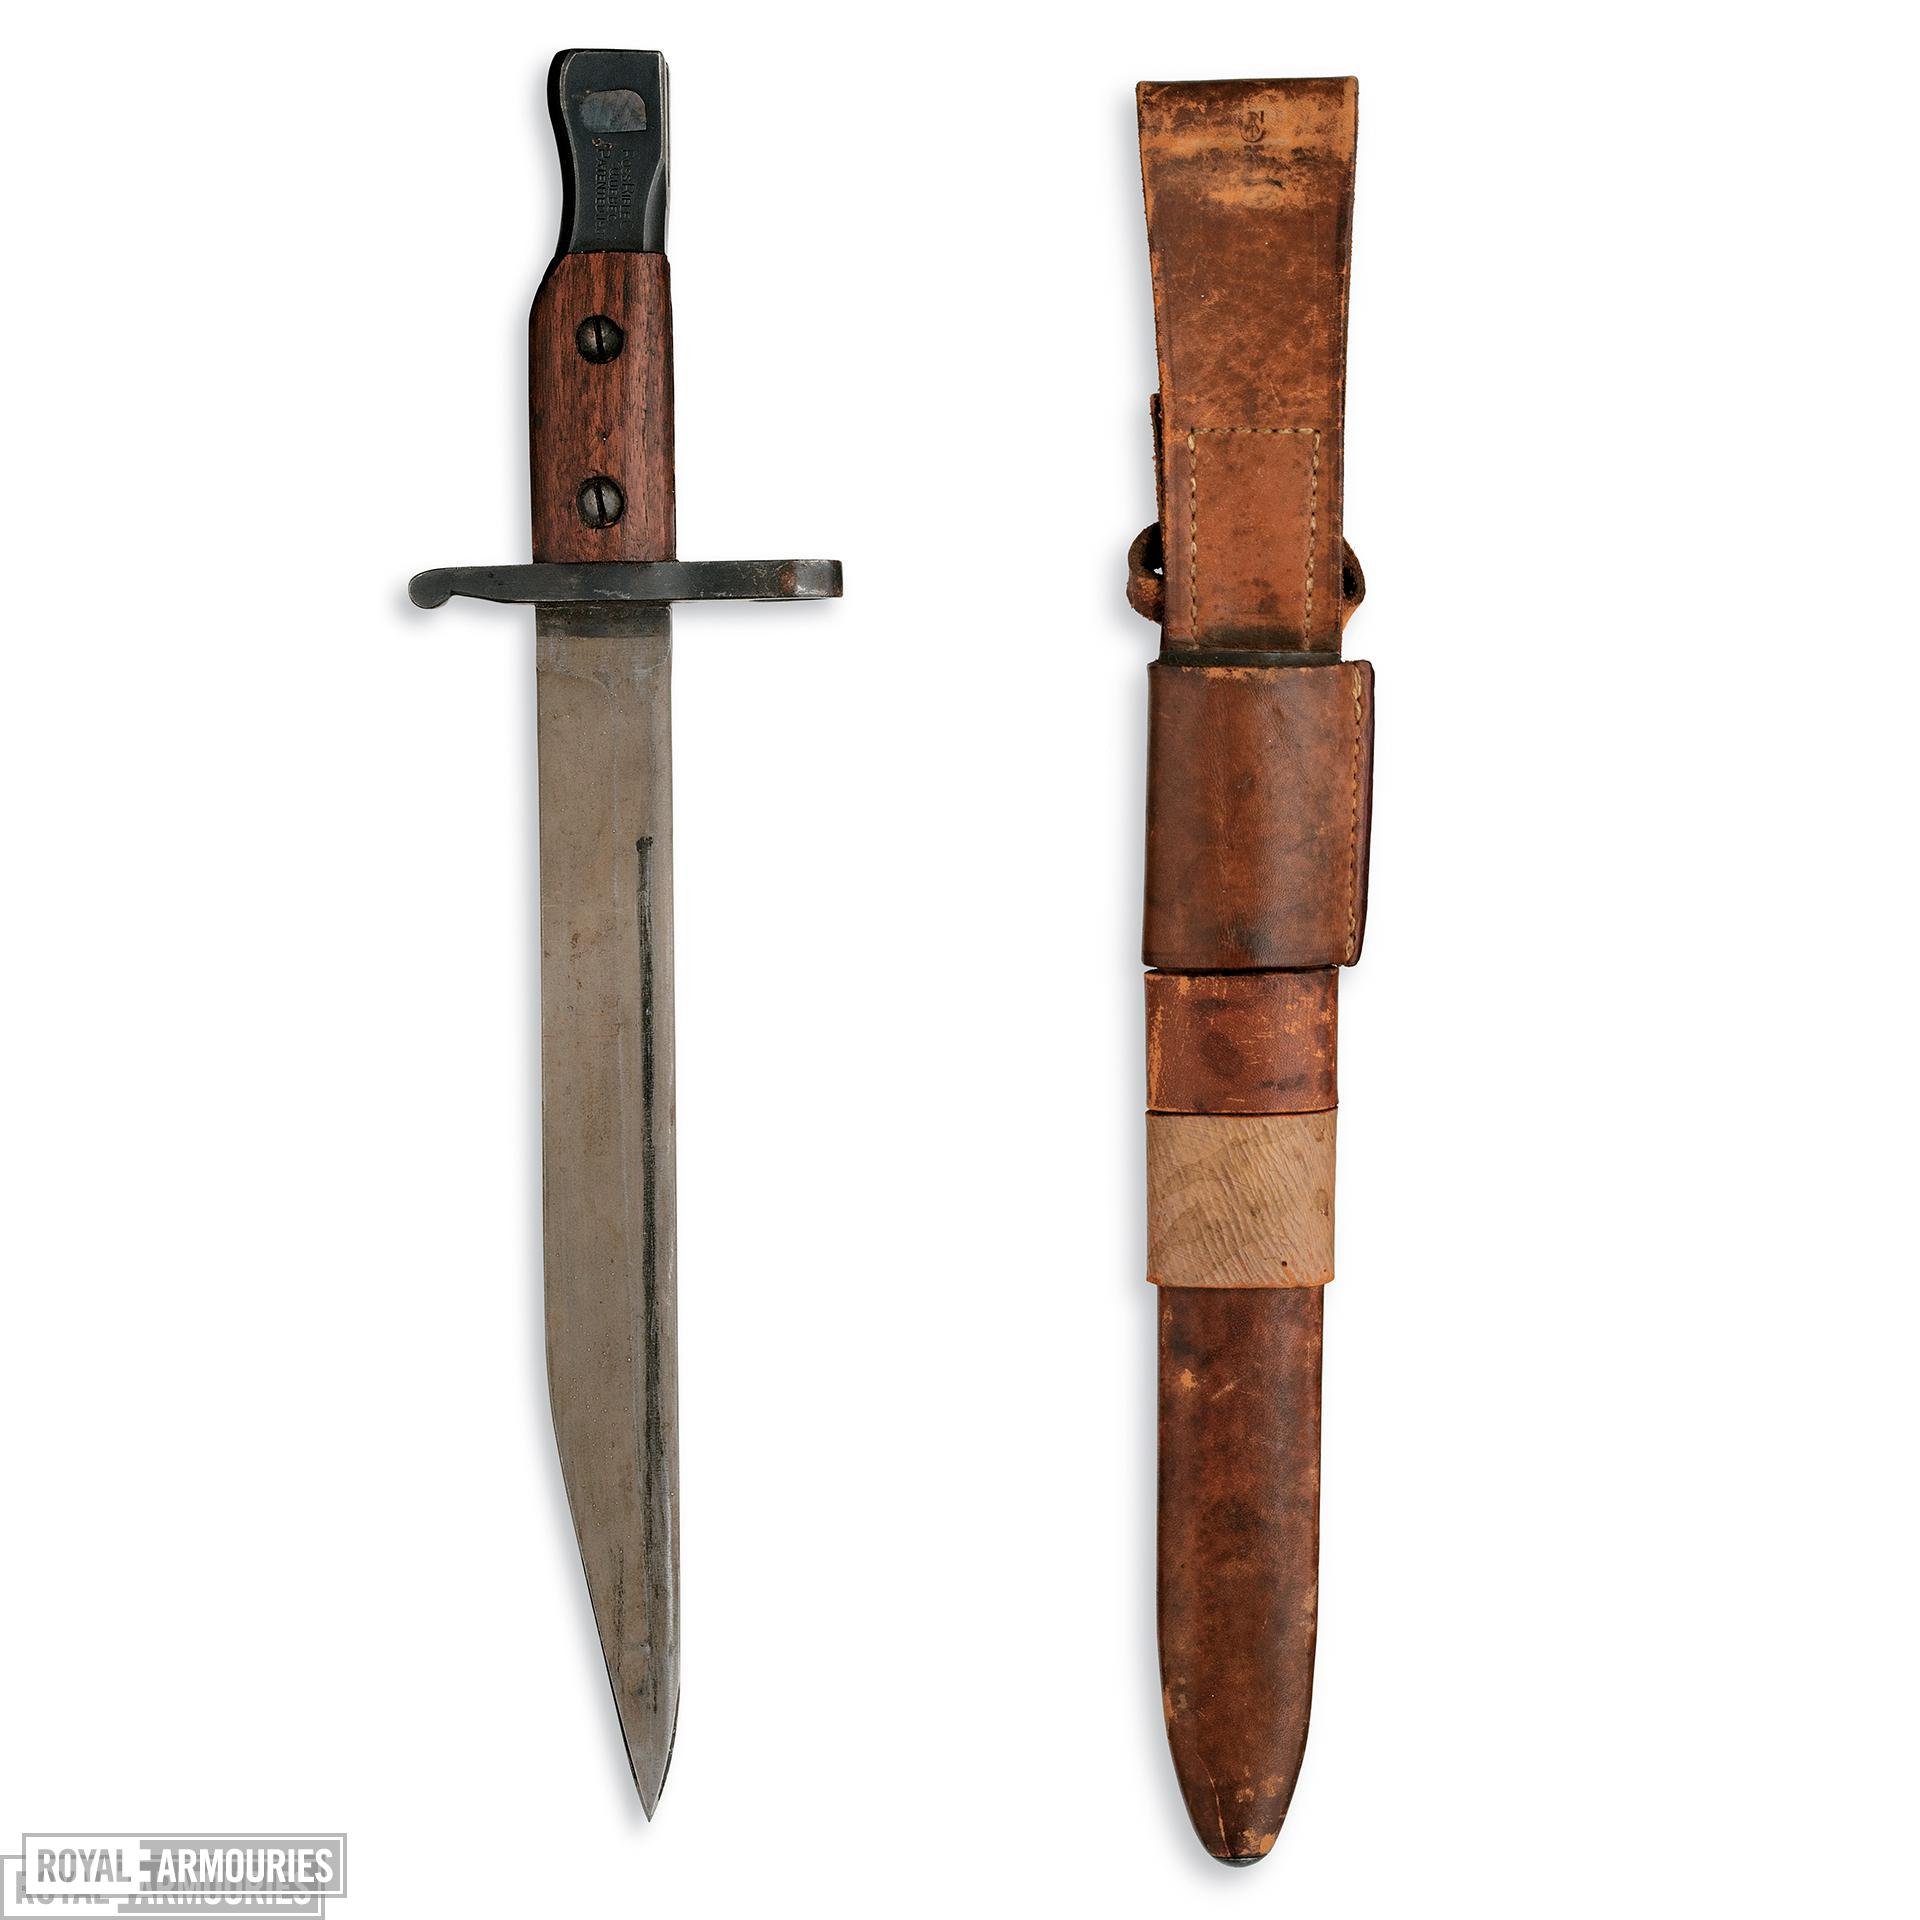 Bayonet and scabbard - Bowie trench knife, from a converted Ross bayonet